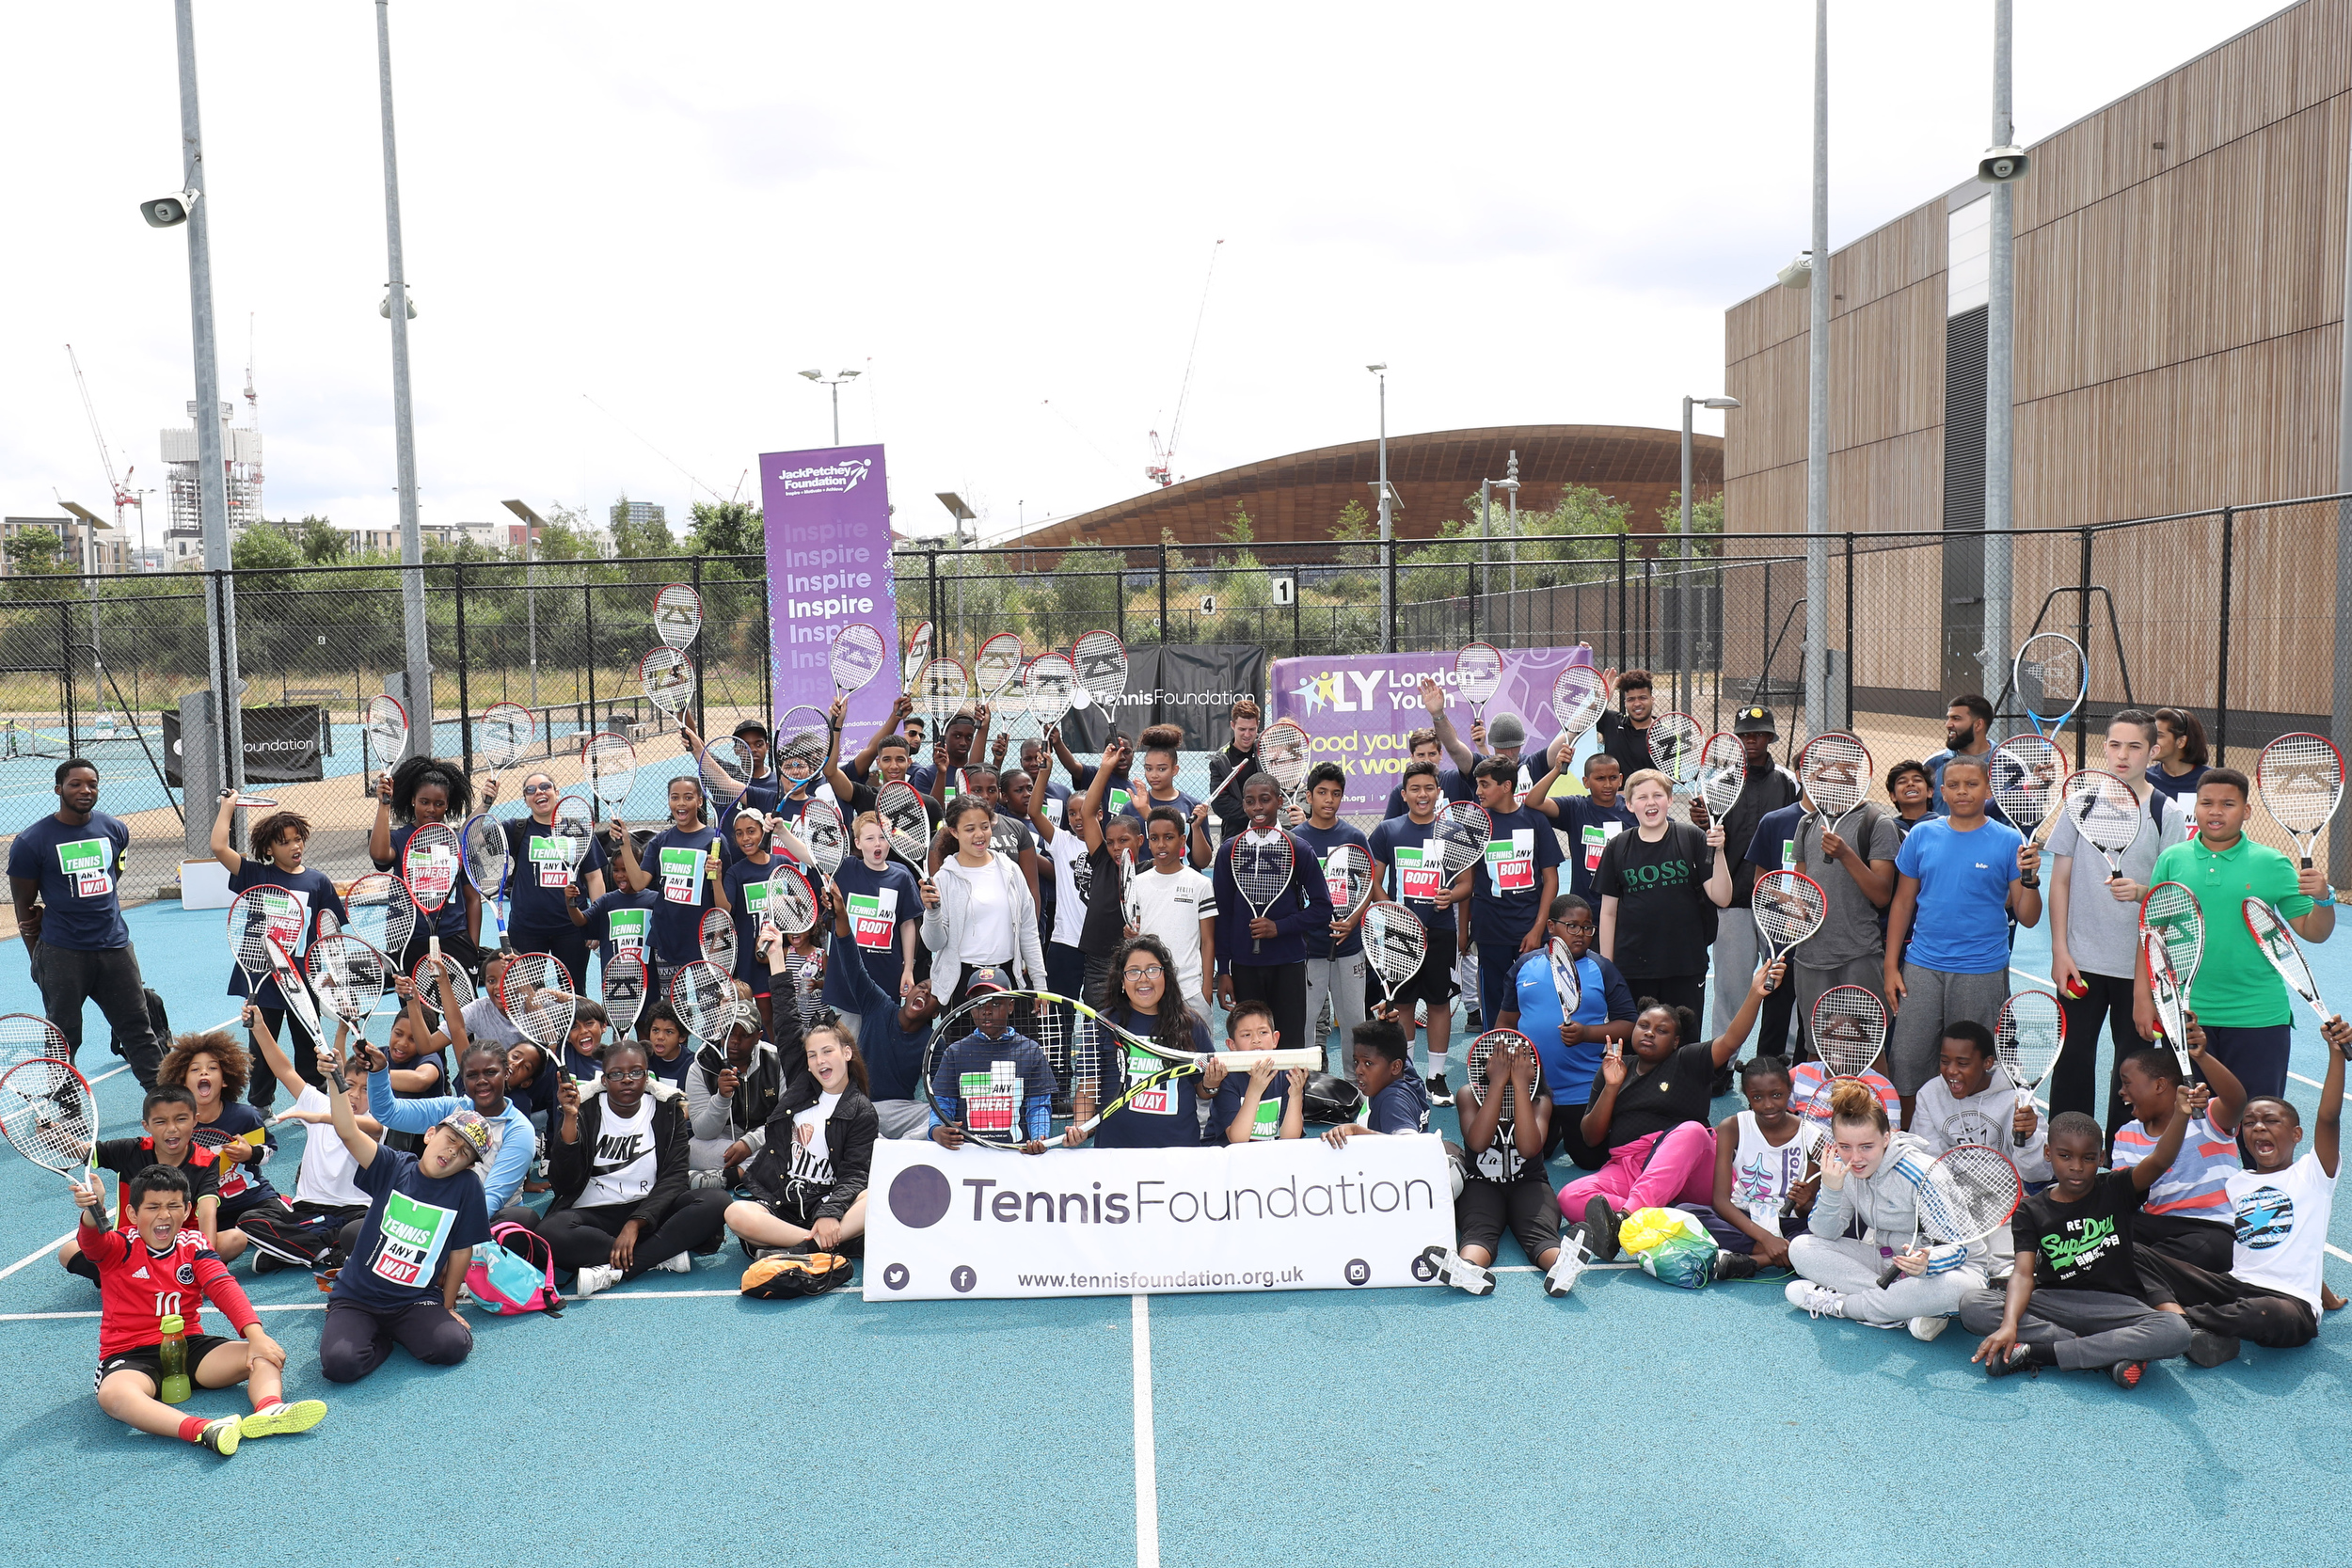 Children at London Youth and Tennis Foundation Serves festival